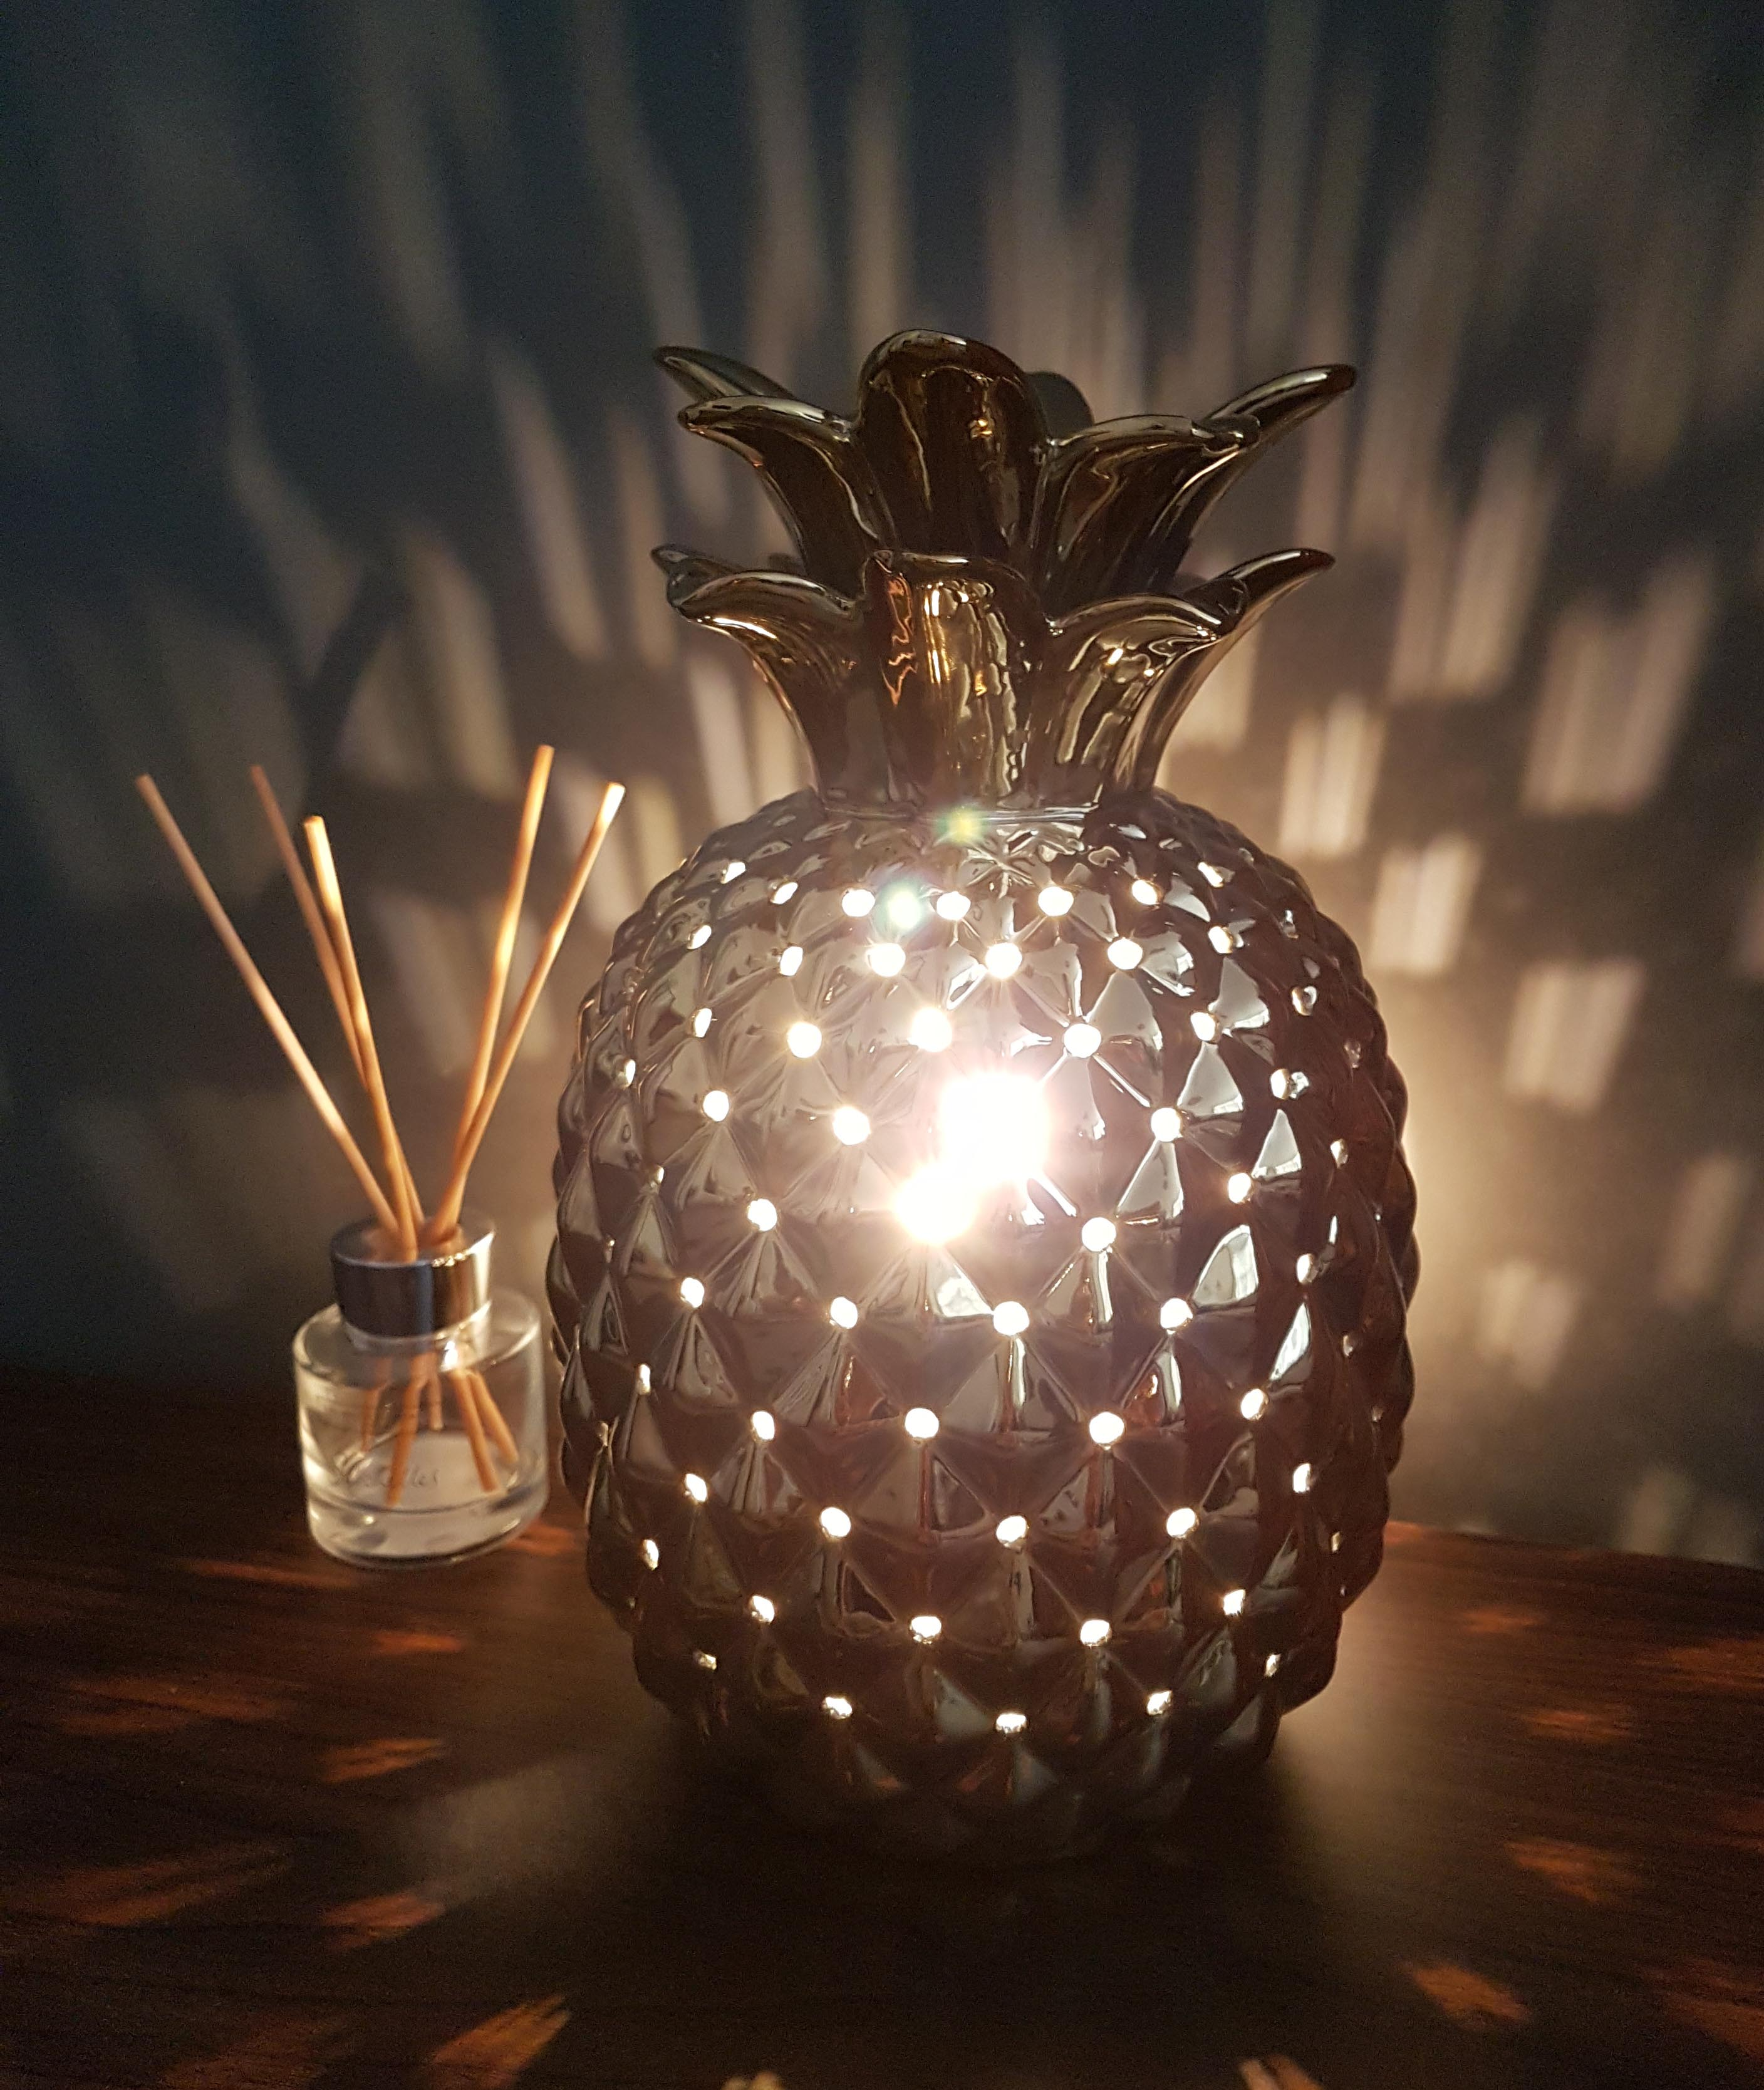 Gold Metal Table Lamp in a Pineapple Design